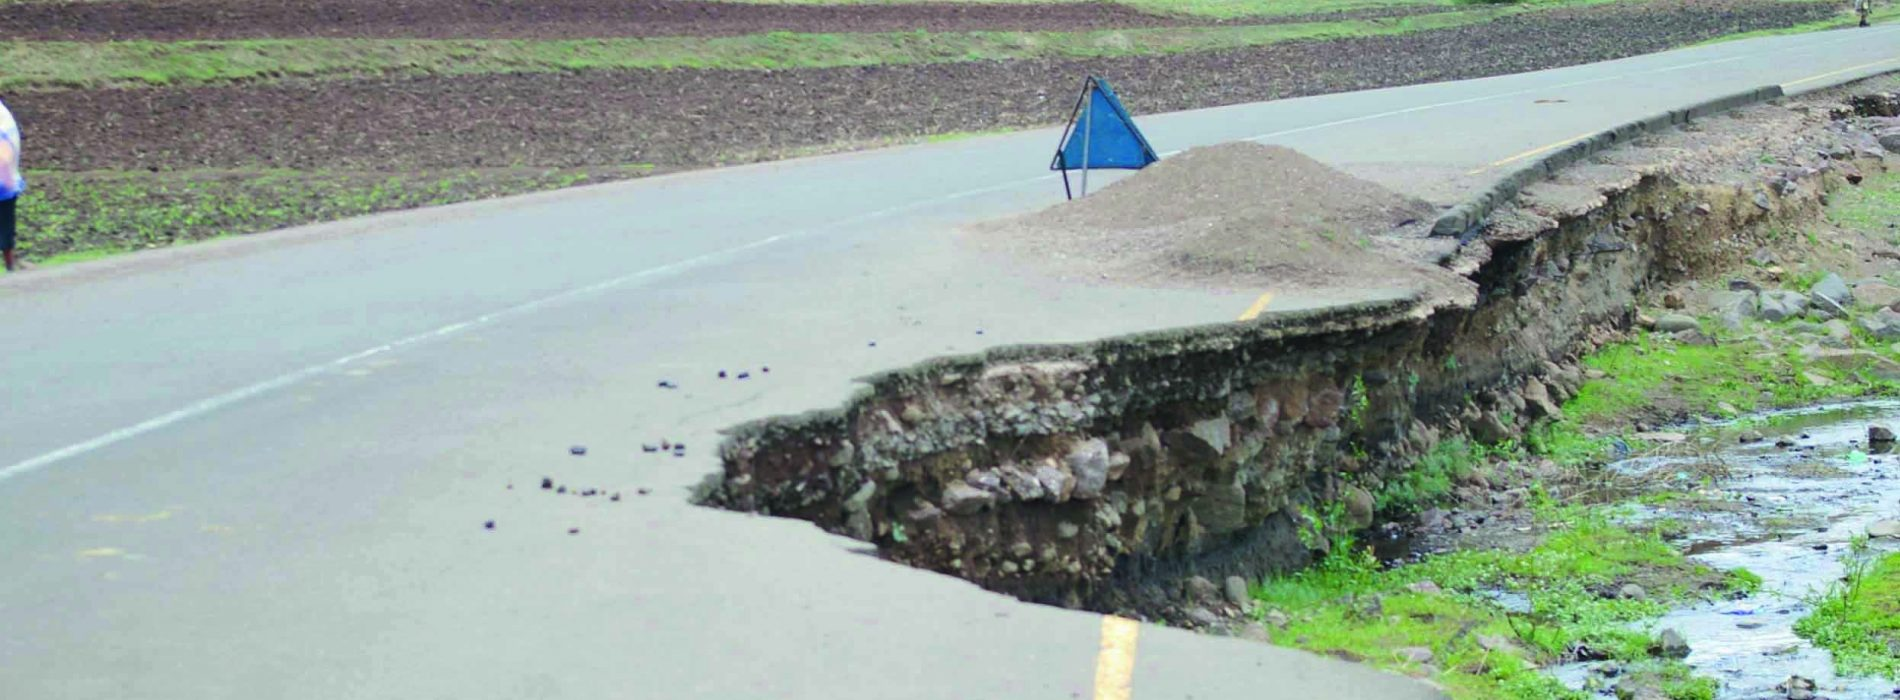 Bungling firm wins contract to fix road